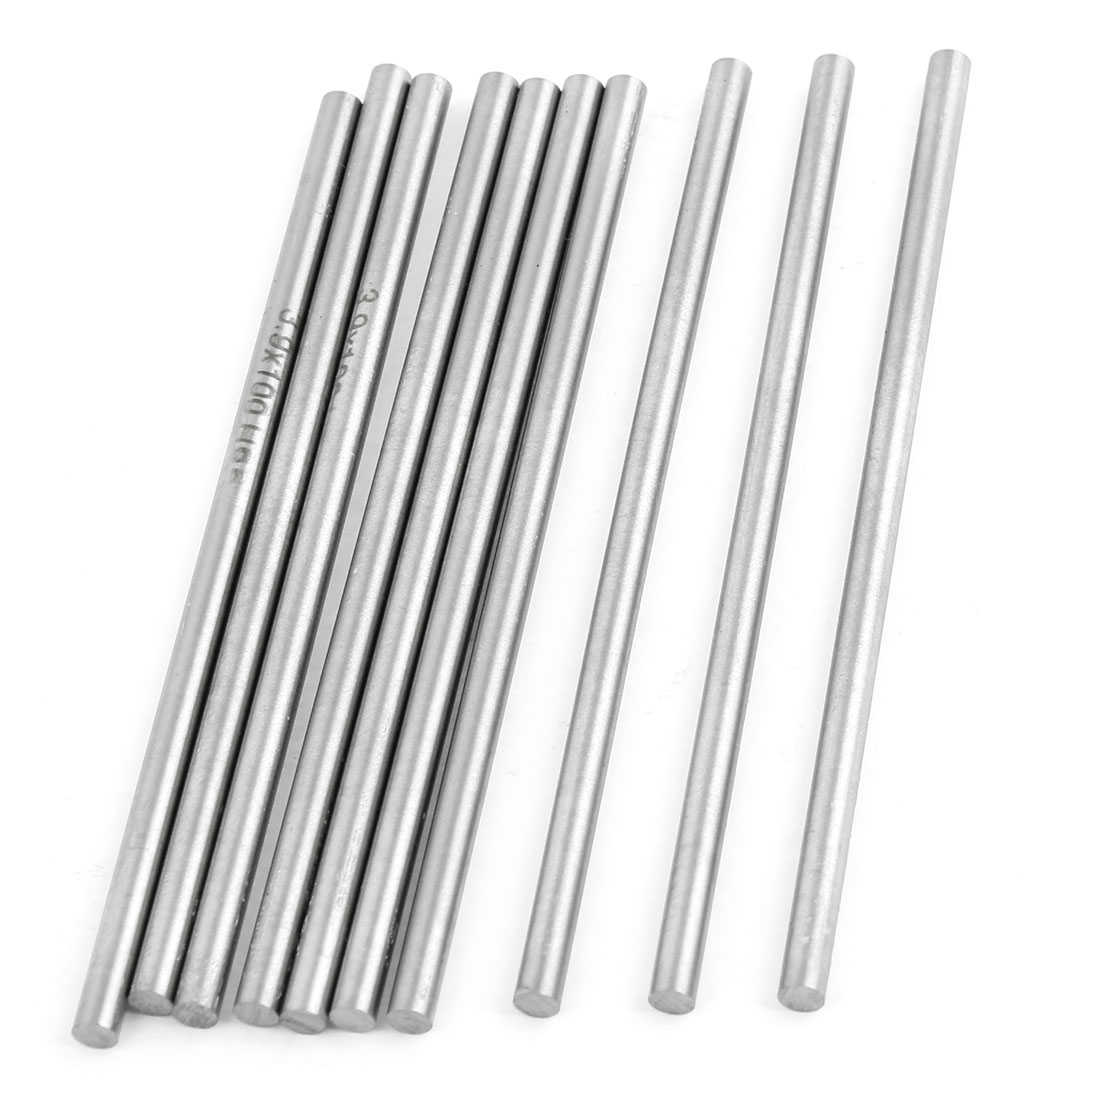 Unique Bargains 10 x High Speed Steel Round Turning Lathe Carbide Bars 3.9mm Dia 100mm Long